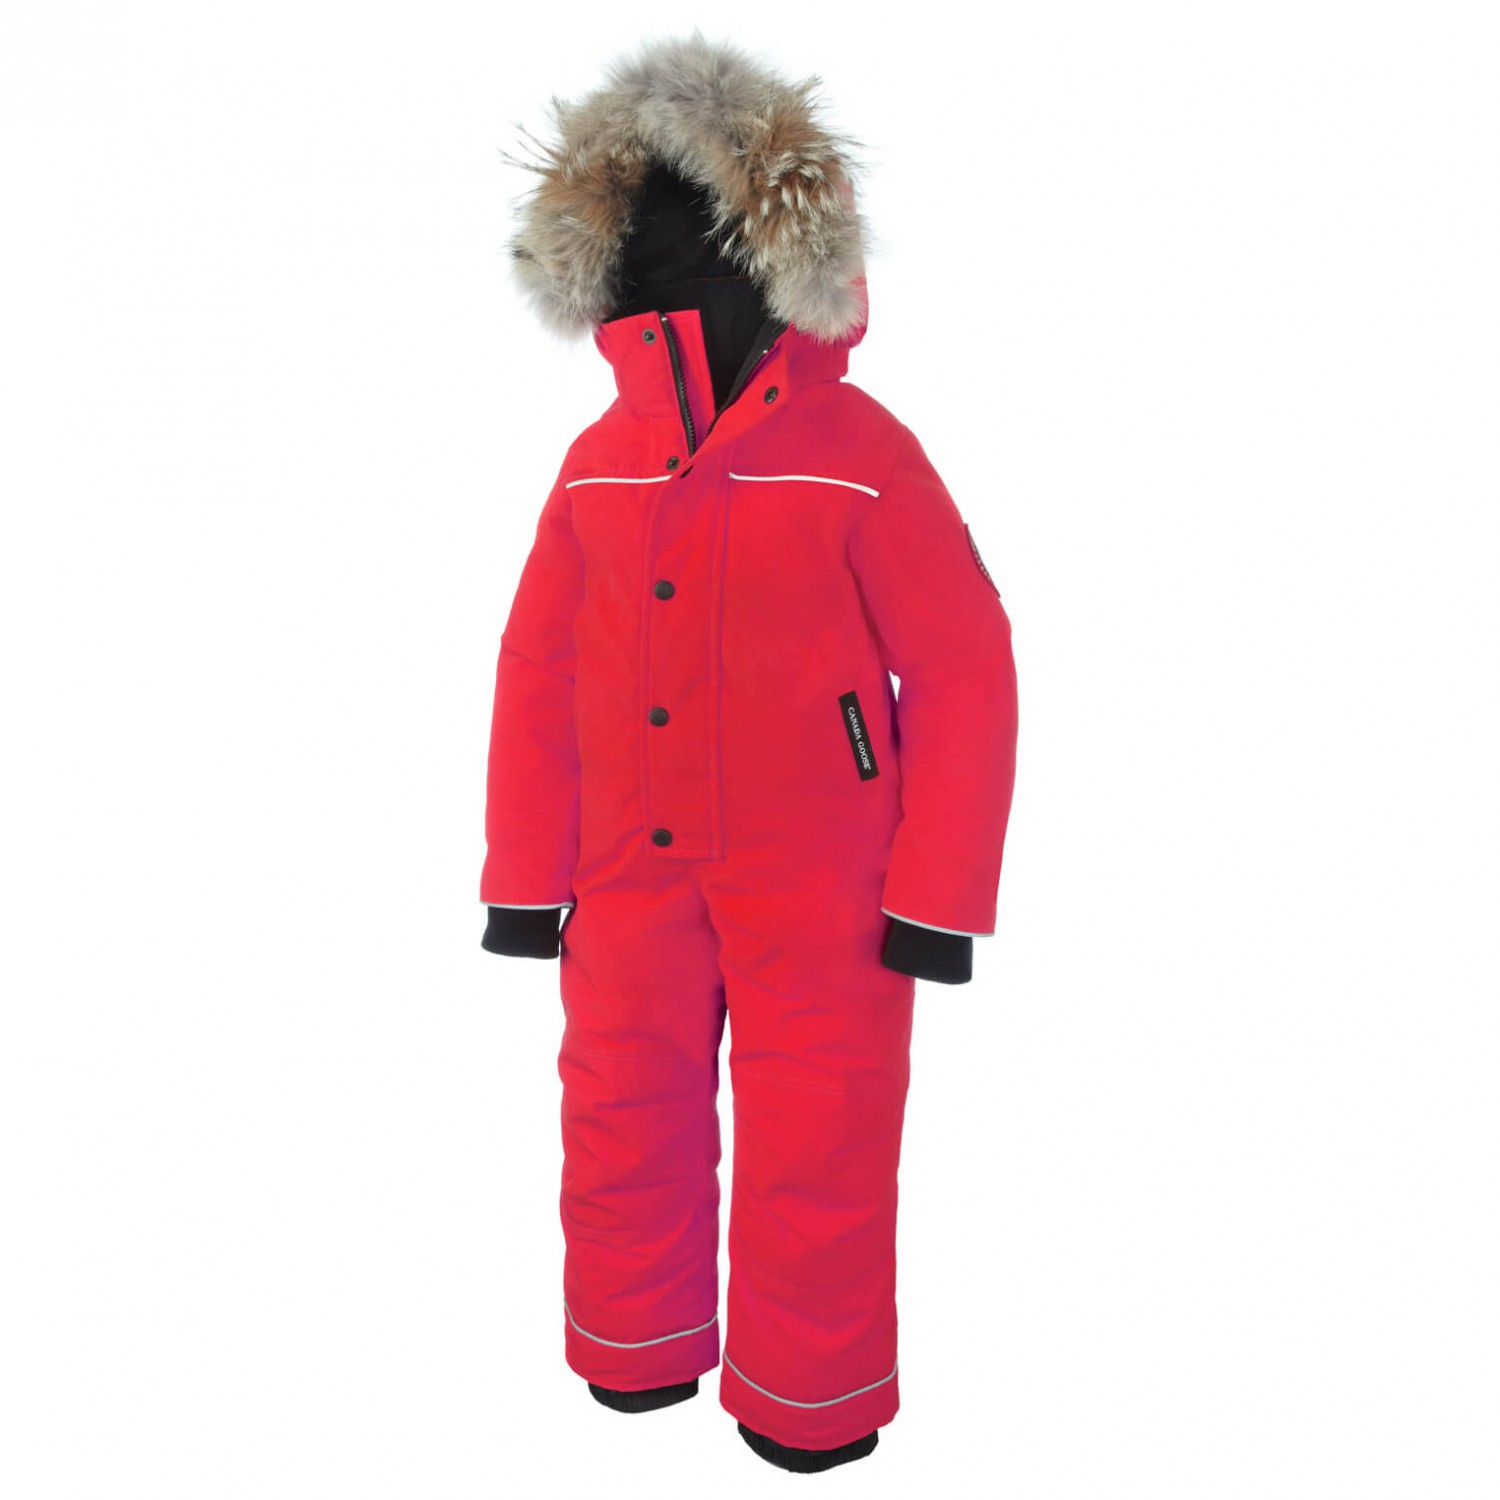 Cute, warm and soft, Columbia Sportswear simplifies taking your baby into the cold. Free shipping for our members.